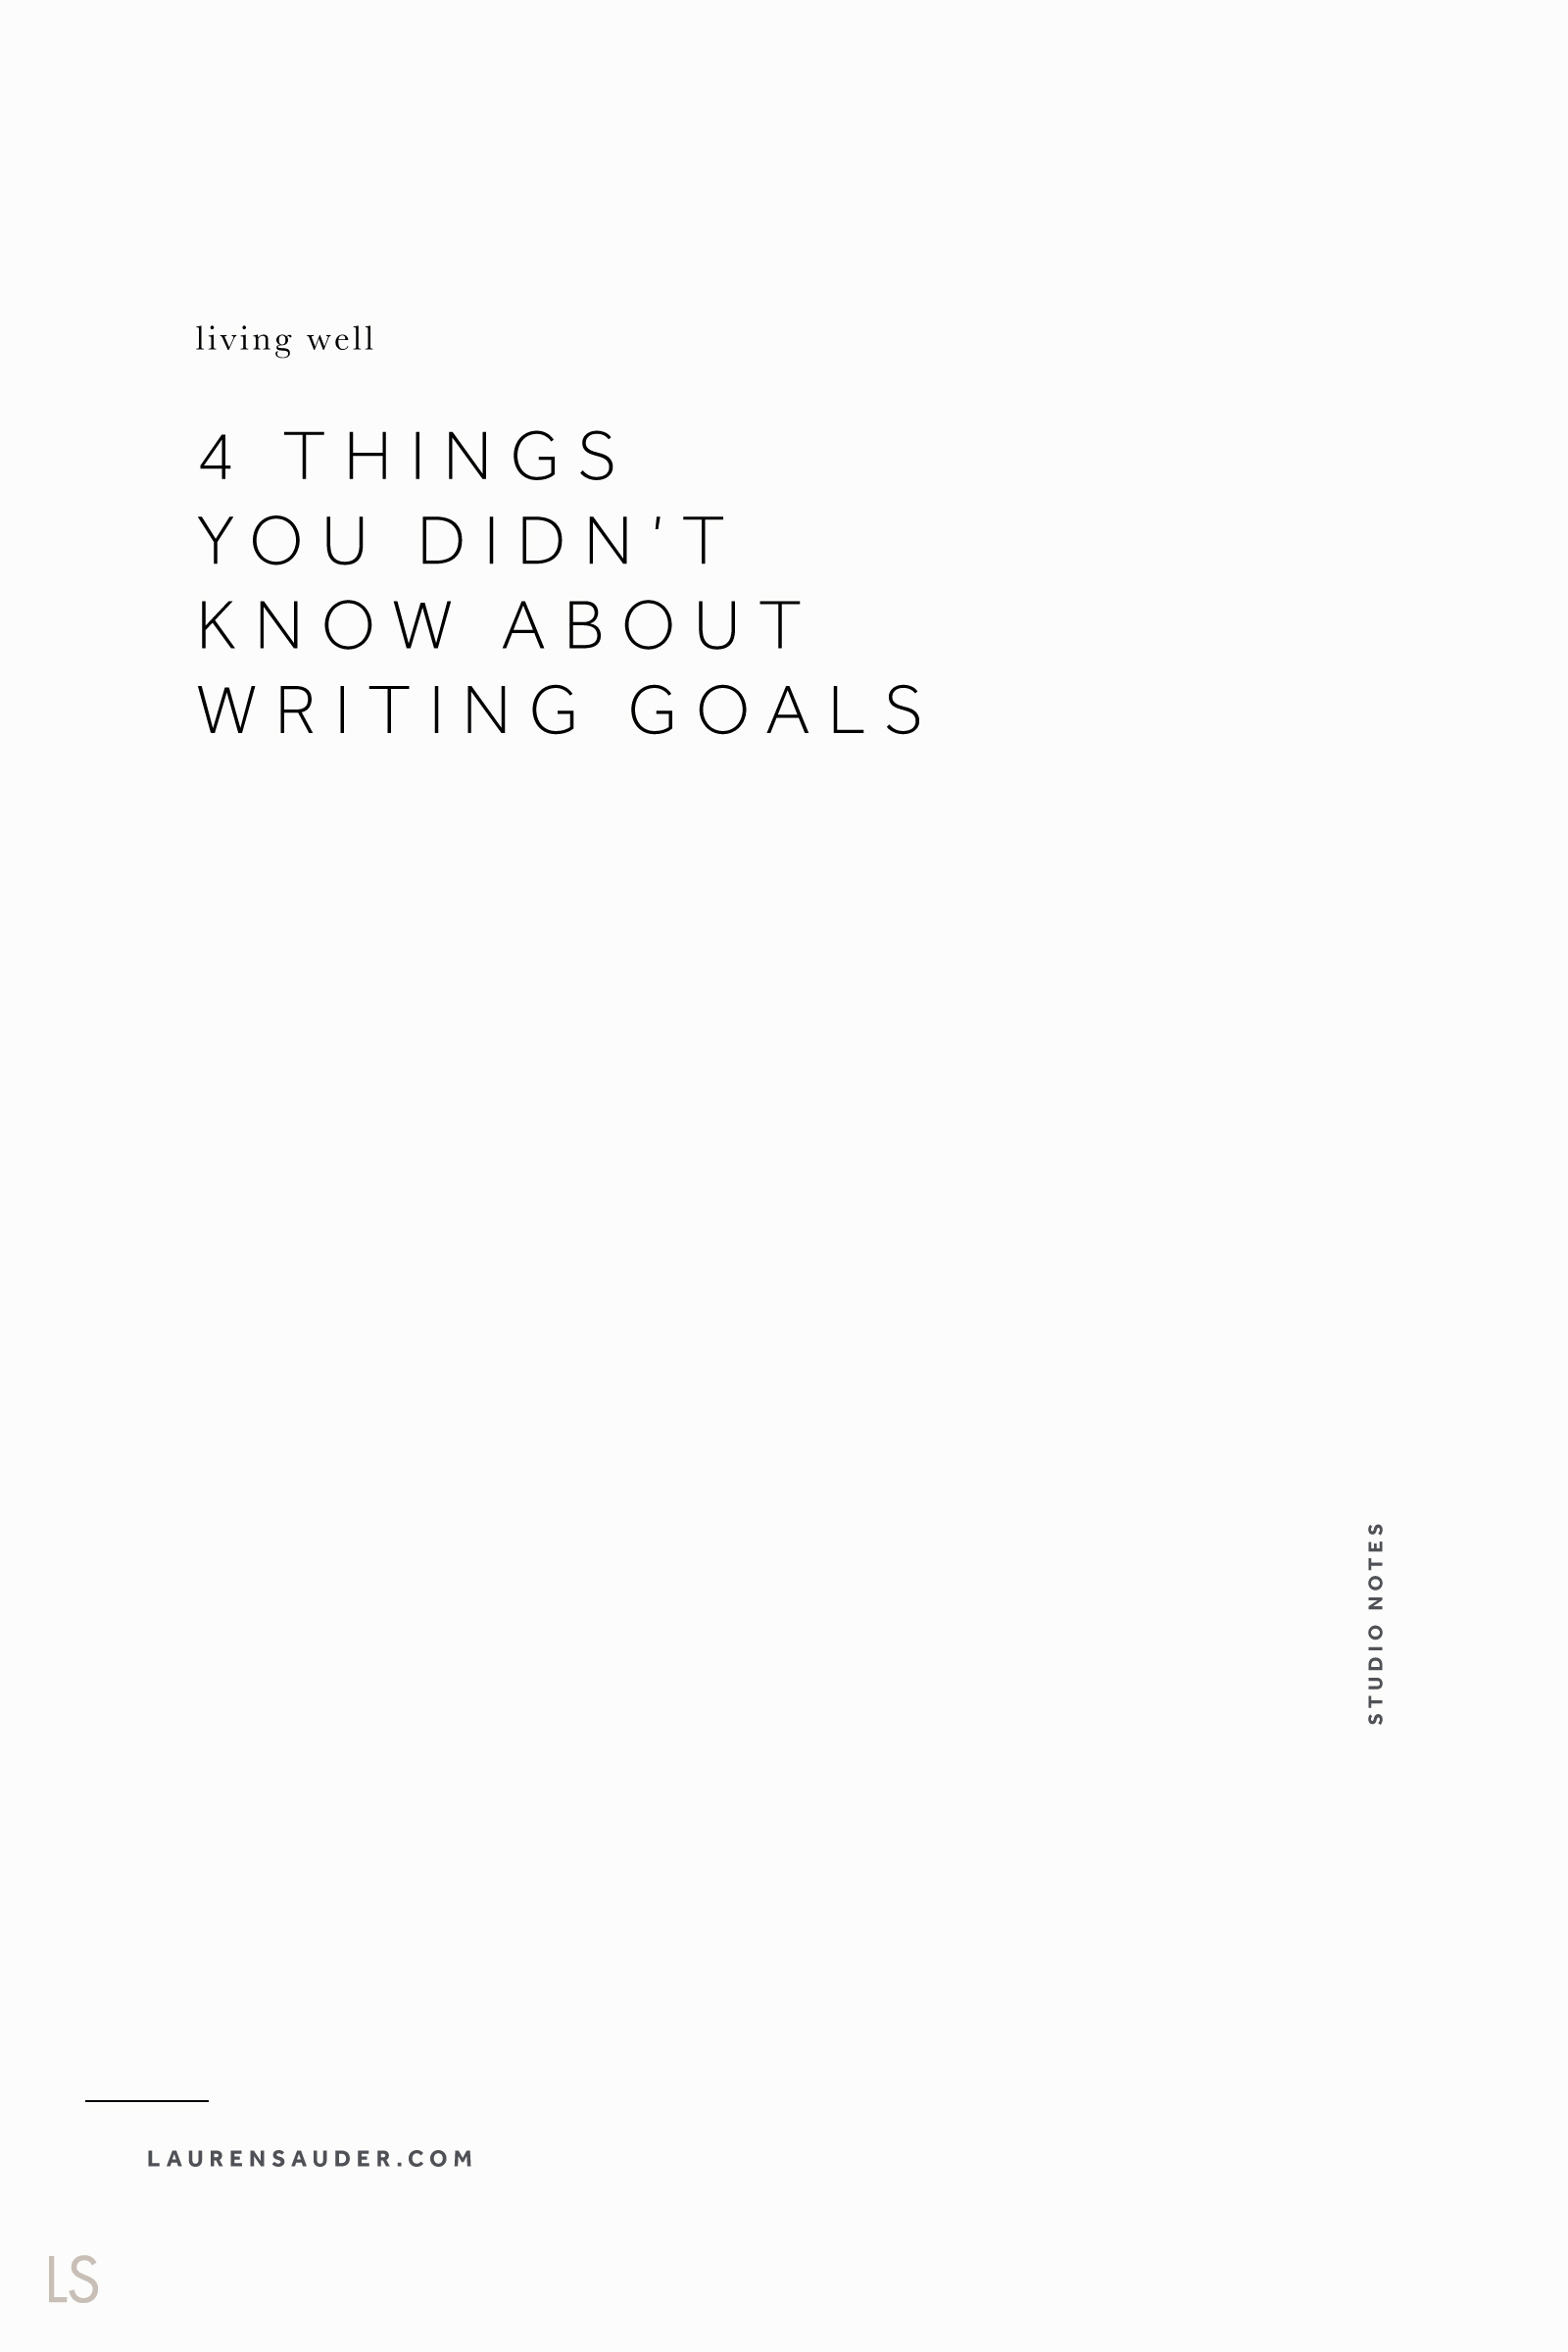 4 Things You Didn't Know About Writing Goals goal setting, goal ideas, goal workbook, goal sheet, january goals, new year goals, habits, daily habits, creative entrepreneur, career